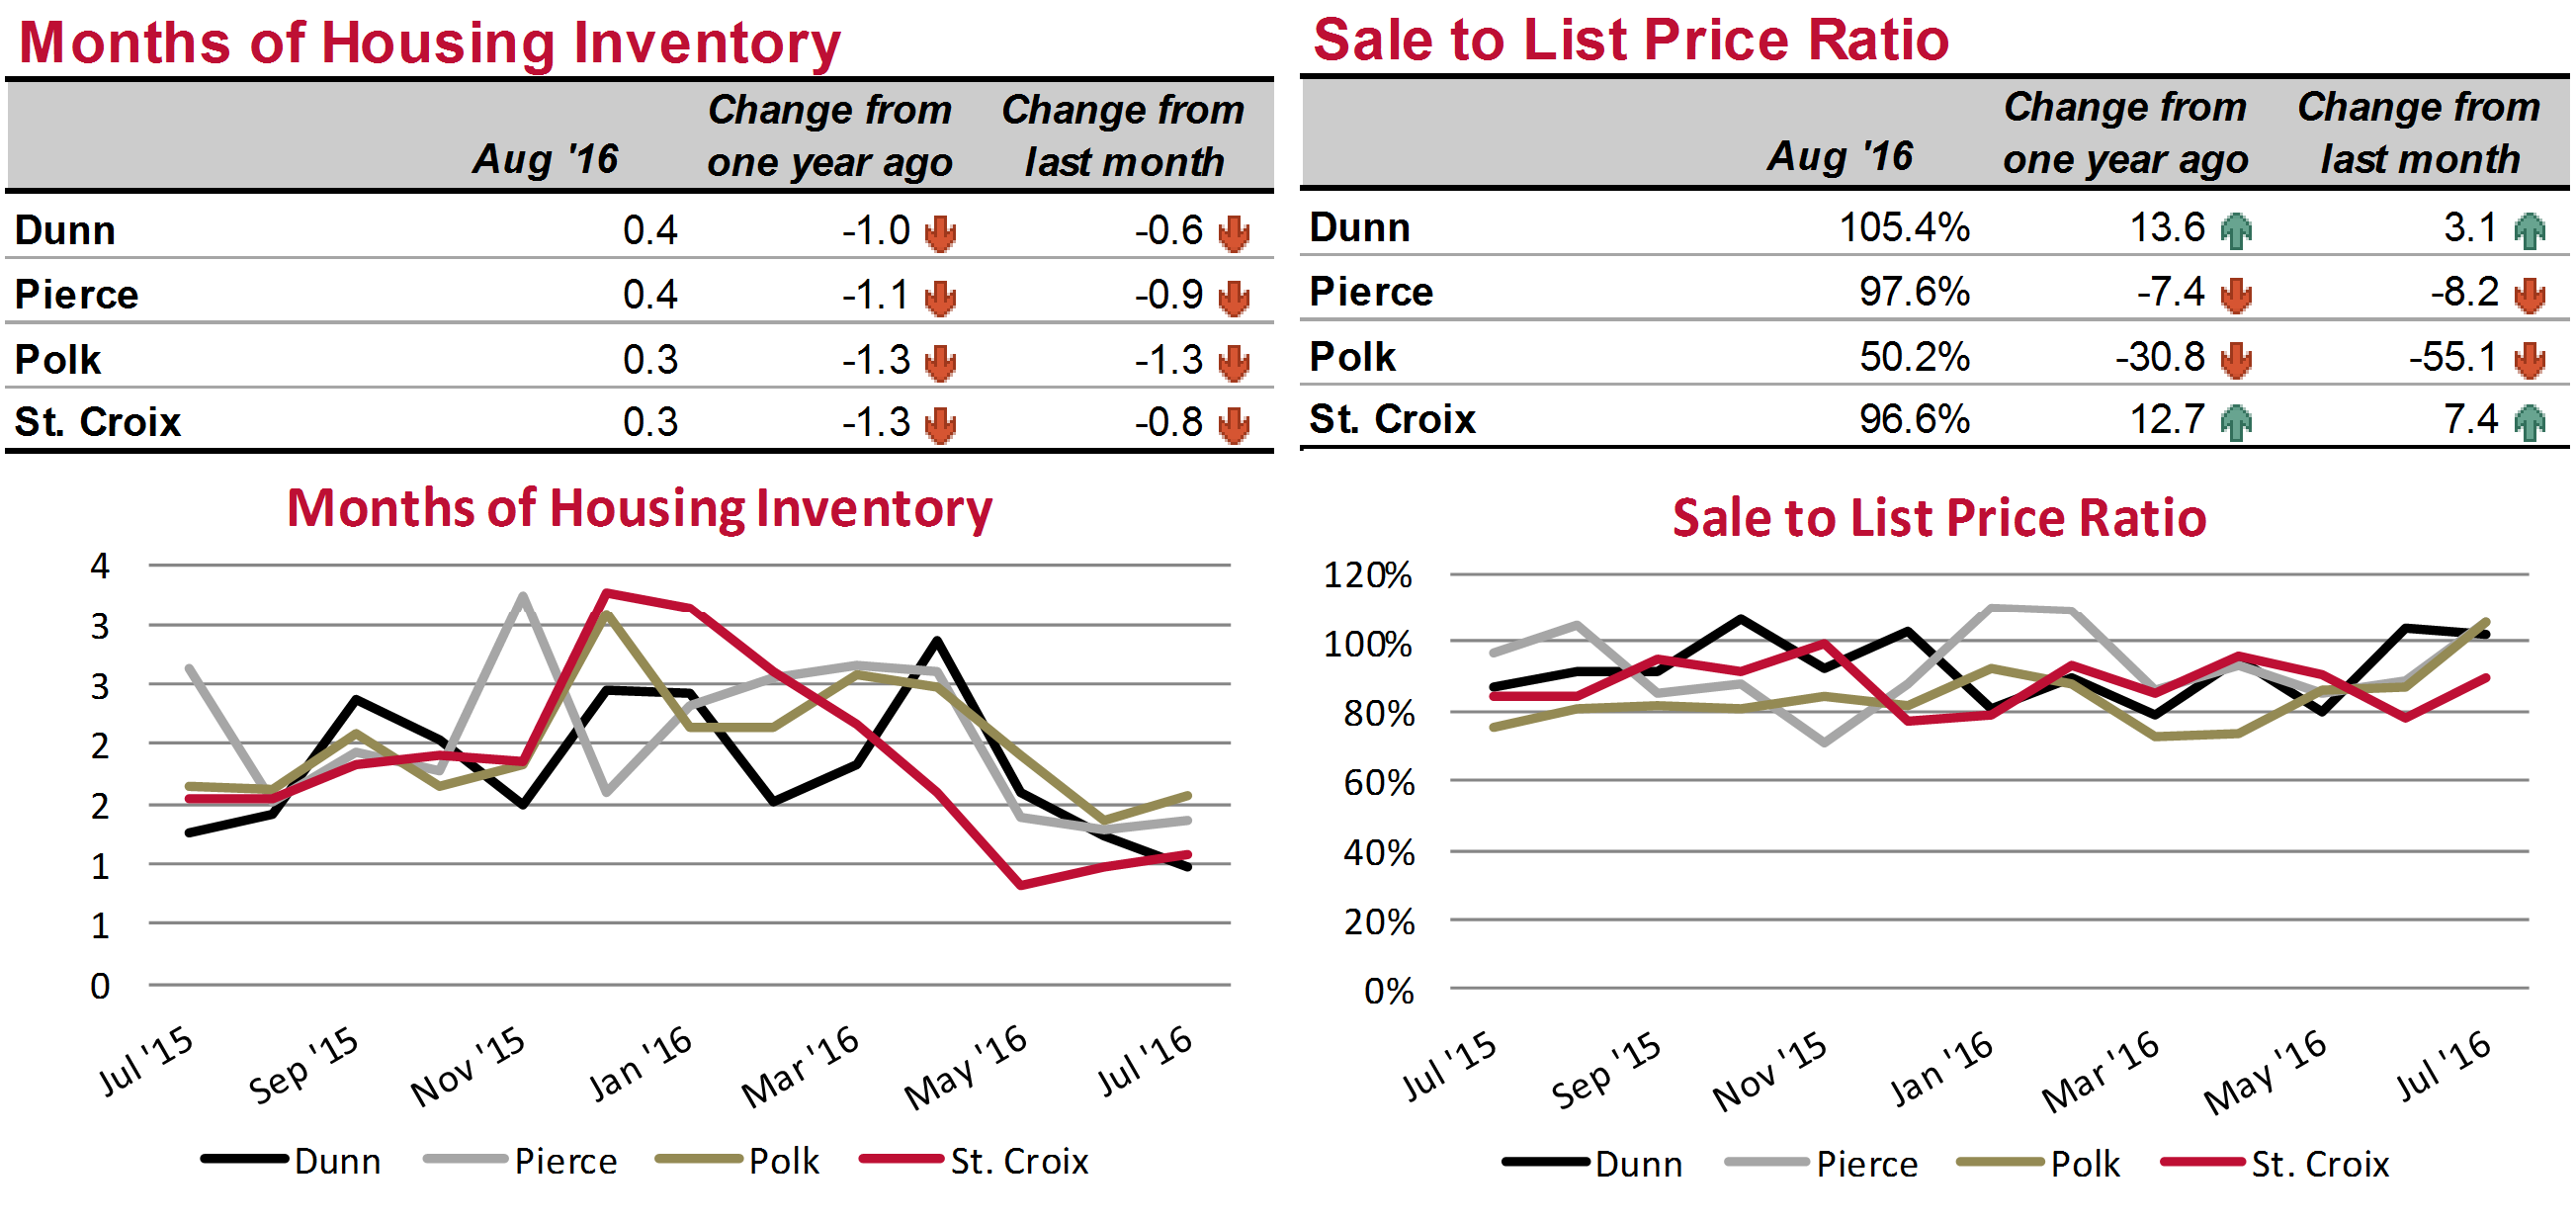 Housing Inventory and Sale to List Price Ratio